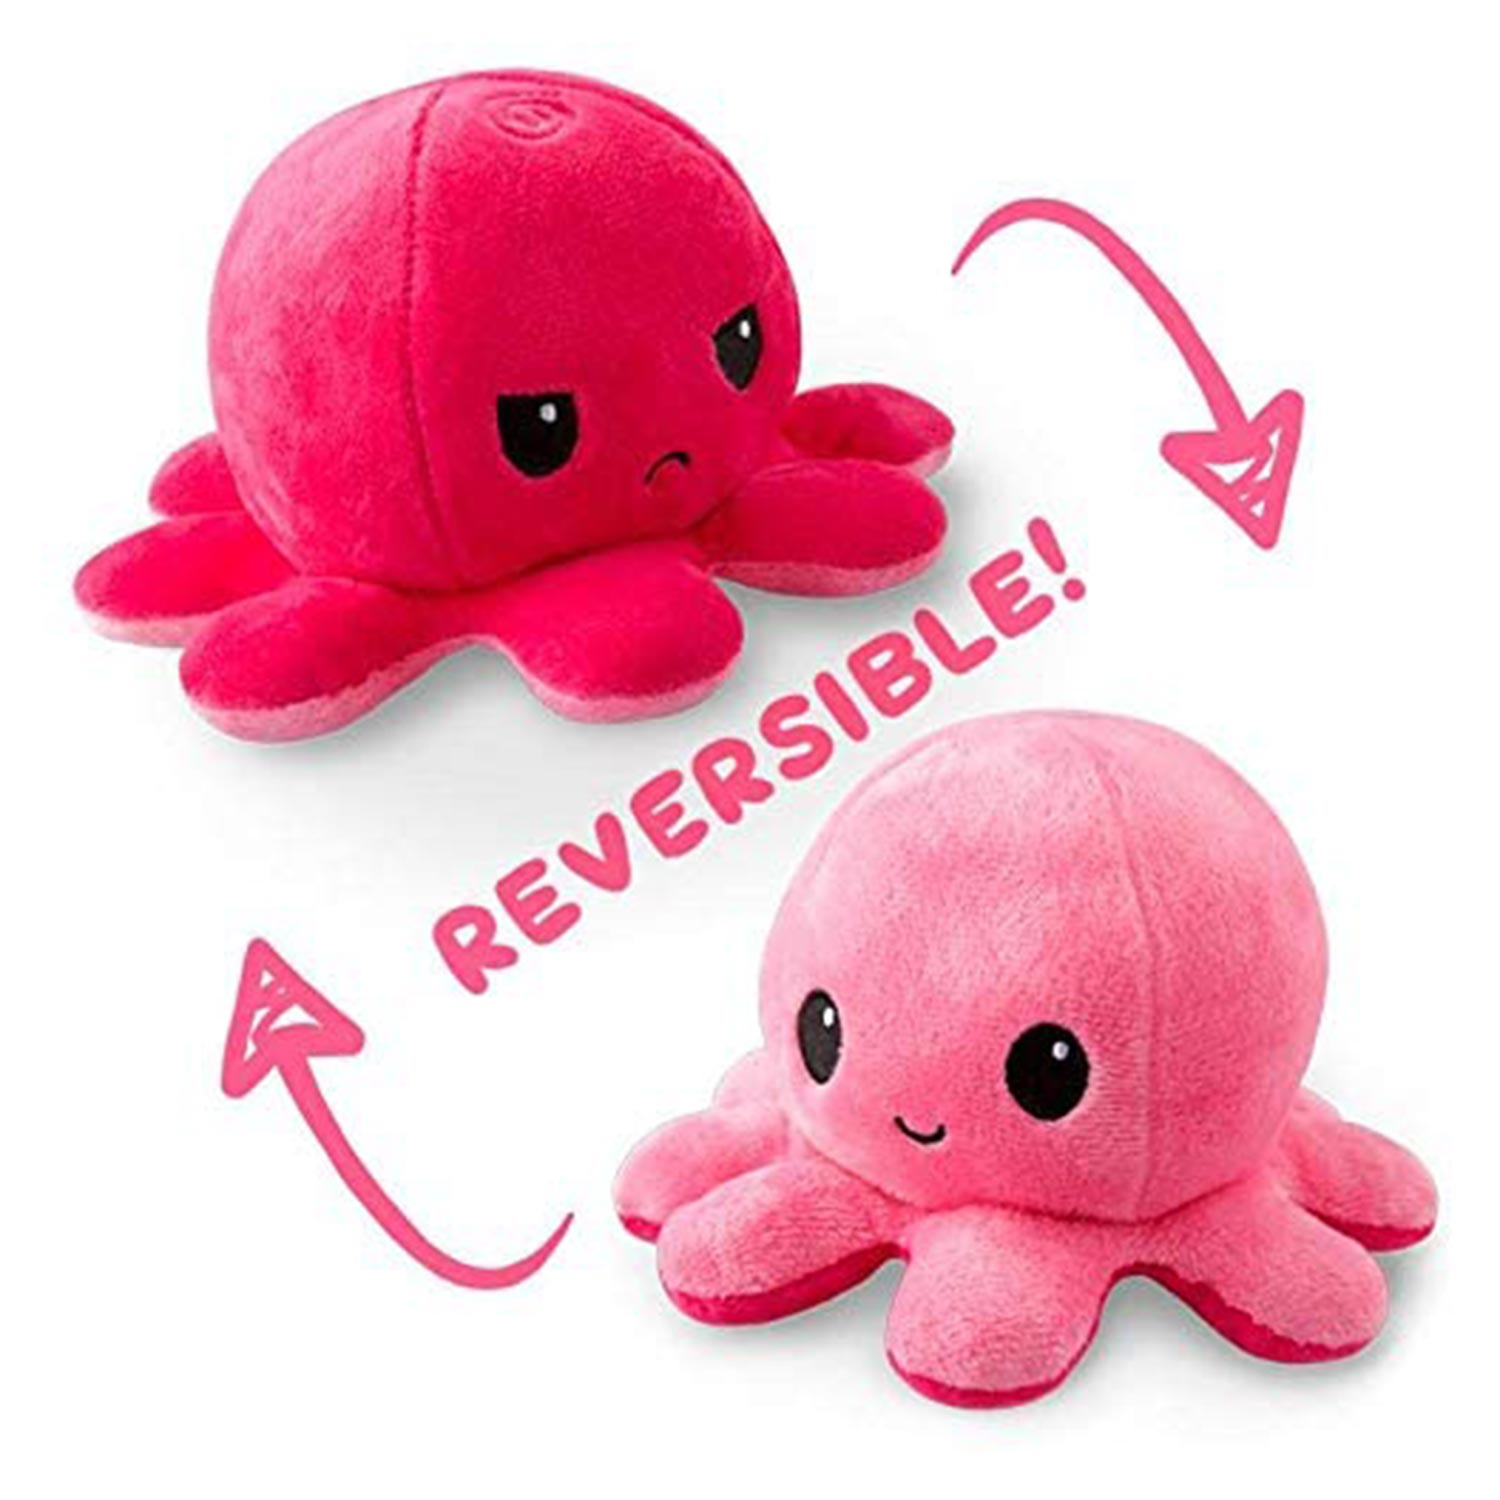 The Original Reversible Octopus Plushie | TeeTurtle's Patented Design